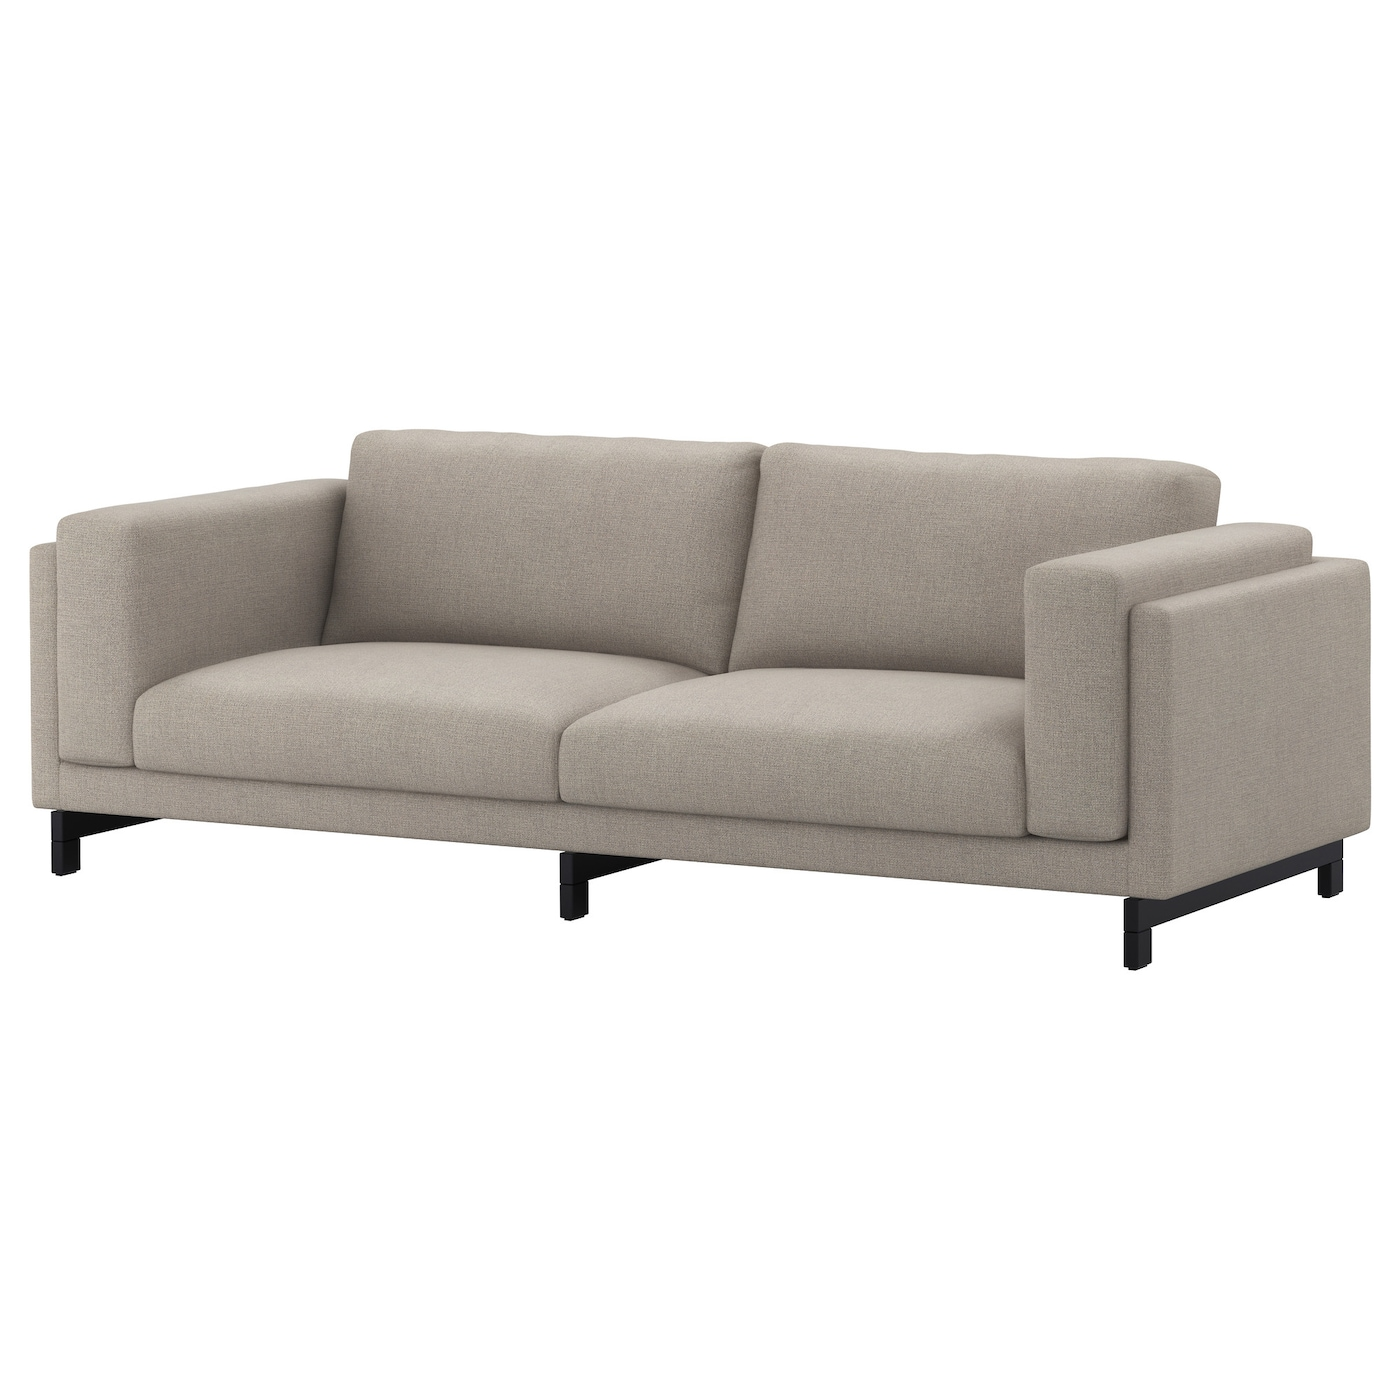 Nockeby three seat sofa ten light grey wood ikea - Bank beige ikea ...